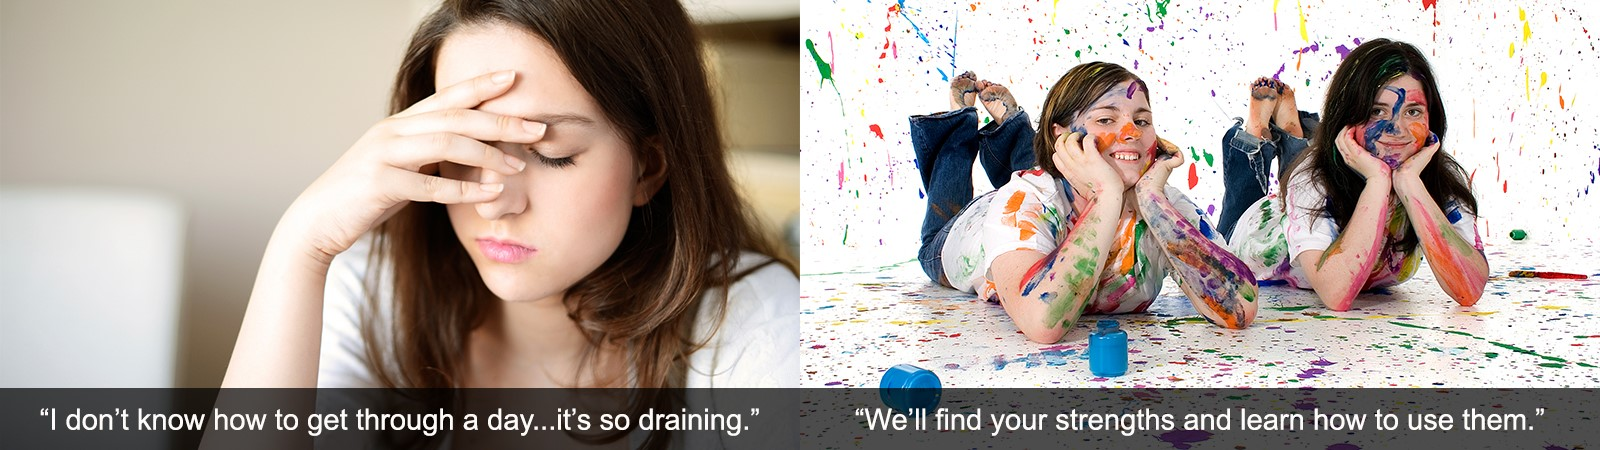 Picture 1 girl with head in hand, captioned, I don't know how to get through a day. It's so draining. Picture 2 two girls laying on floor with paint splattered, smiling captioned, we'll find your strengths and learn how to use them.